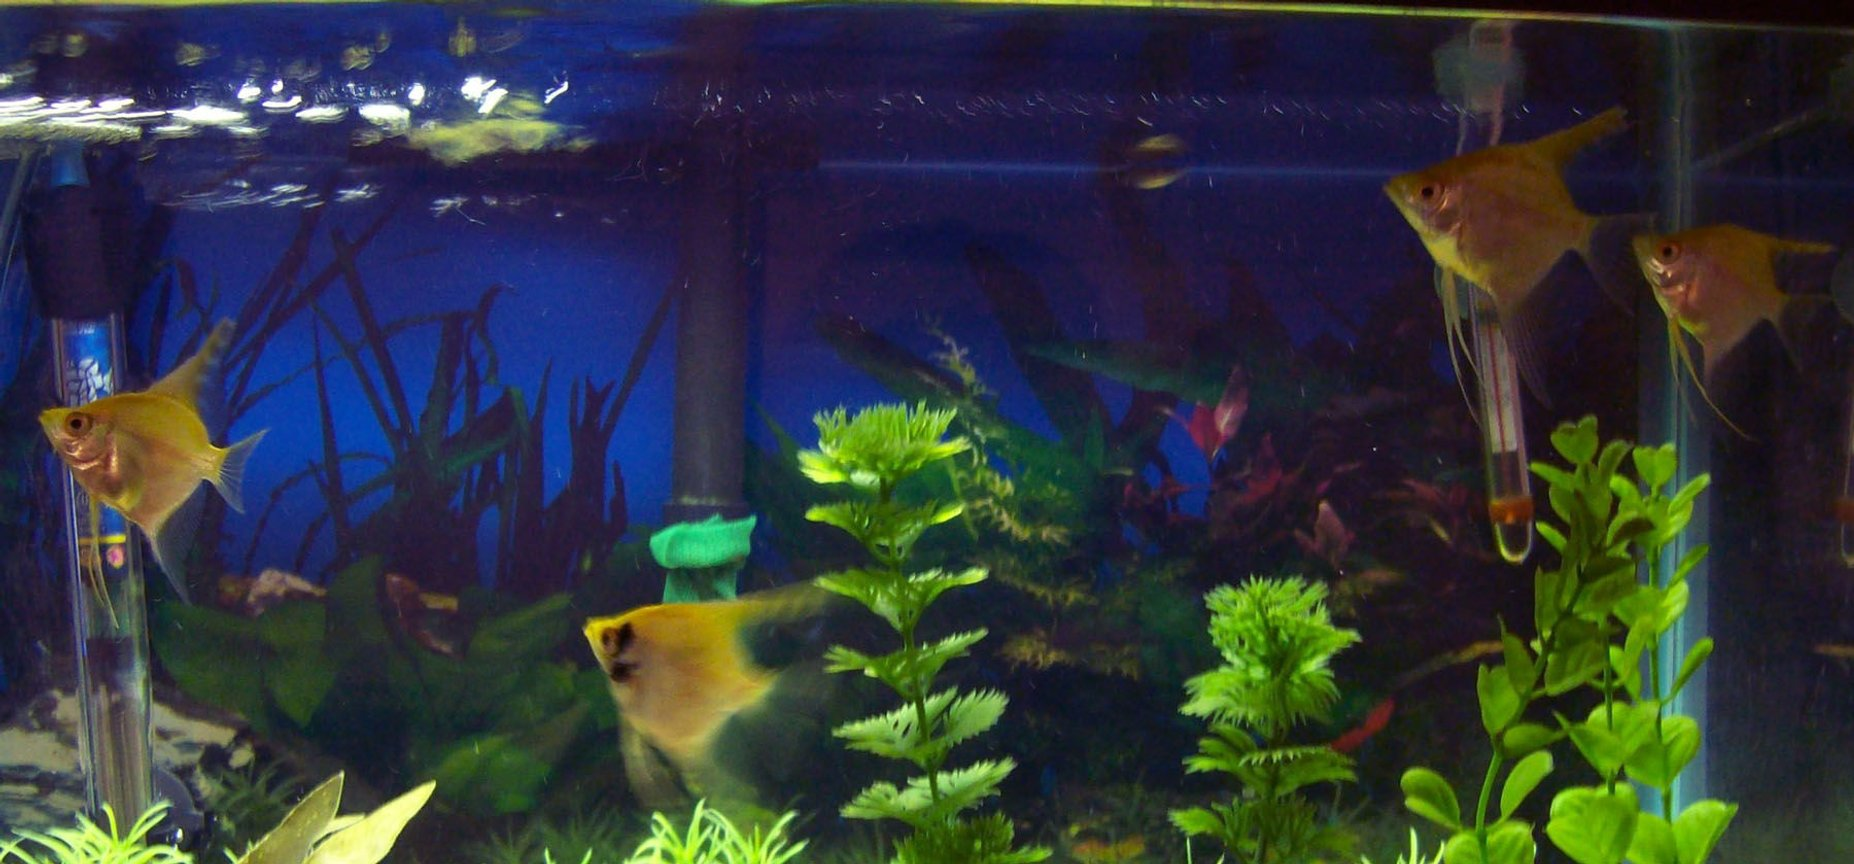 freshwater fish - pterophyllum sp. - red angel stocking in 55 gallons tank - my new angels